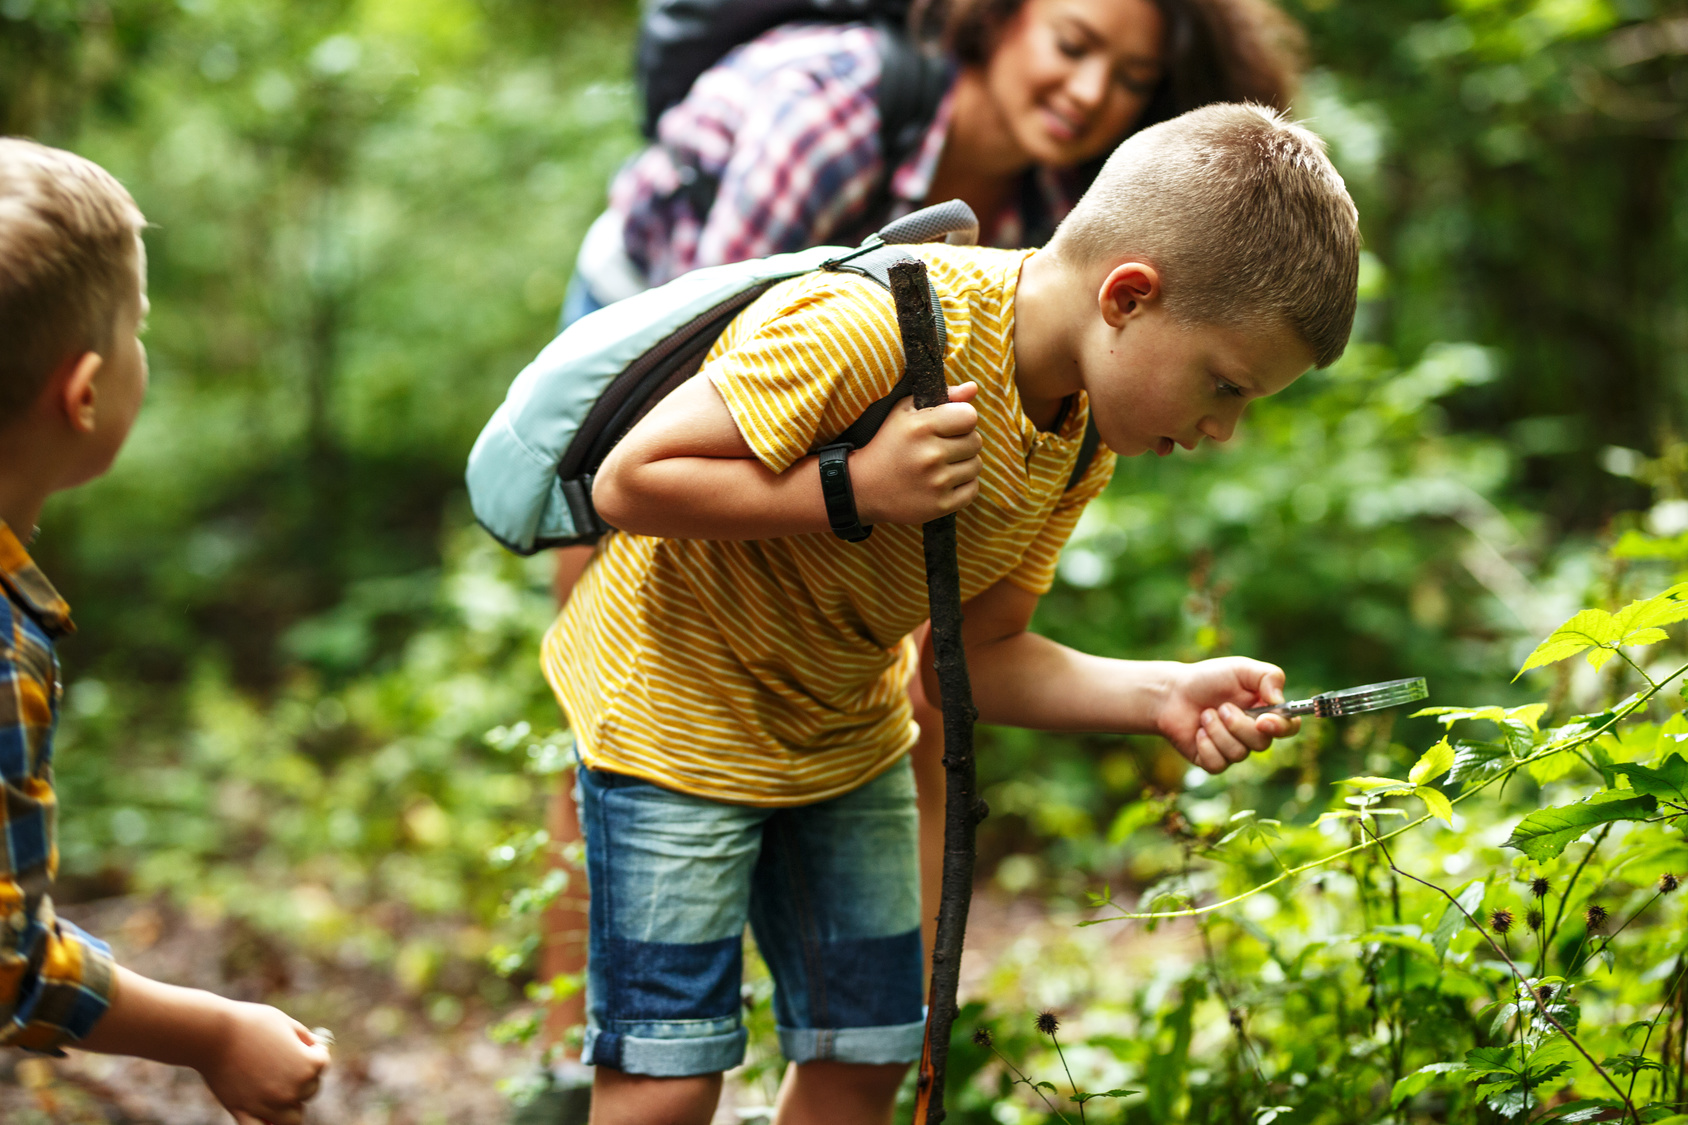 'Nature makes people happy, that's what it sort of means:' children's definitions and perceptions of nature in rural Northwestern Ontario